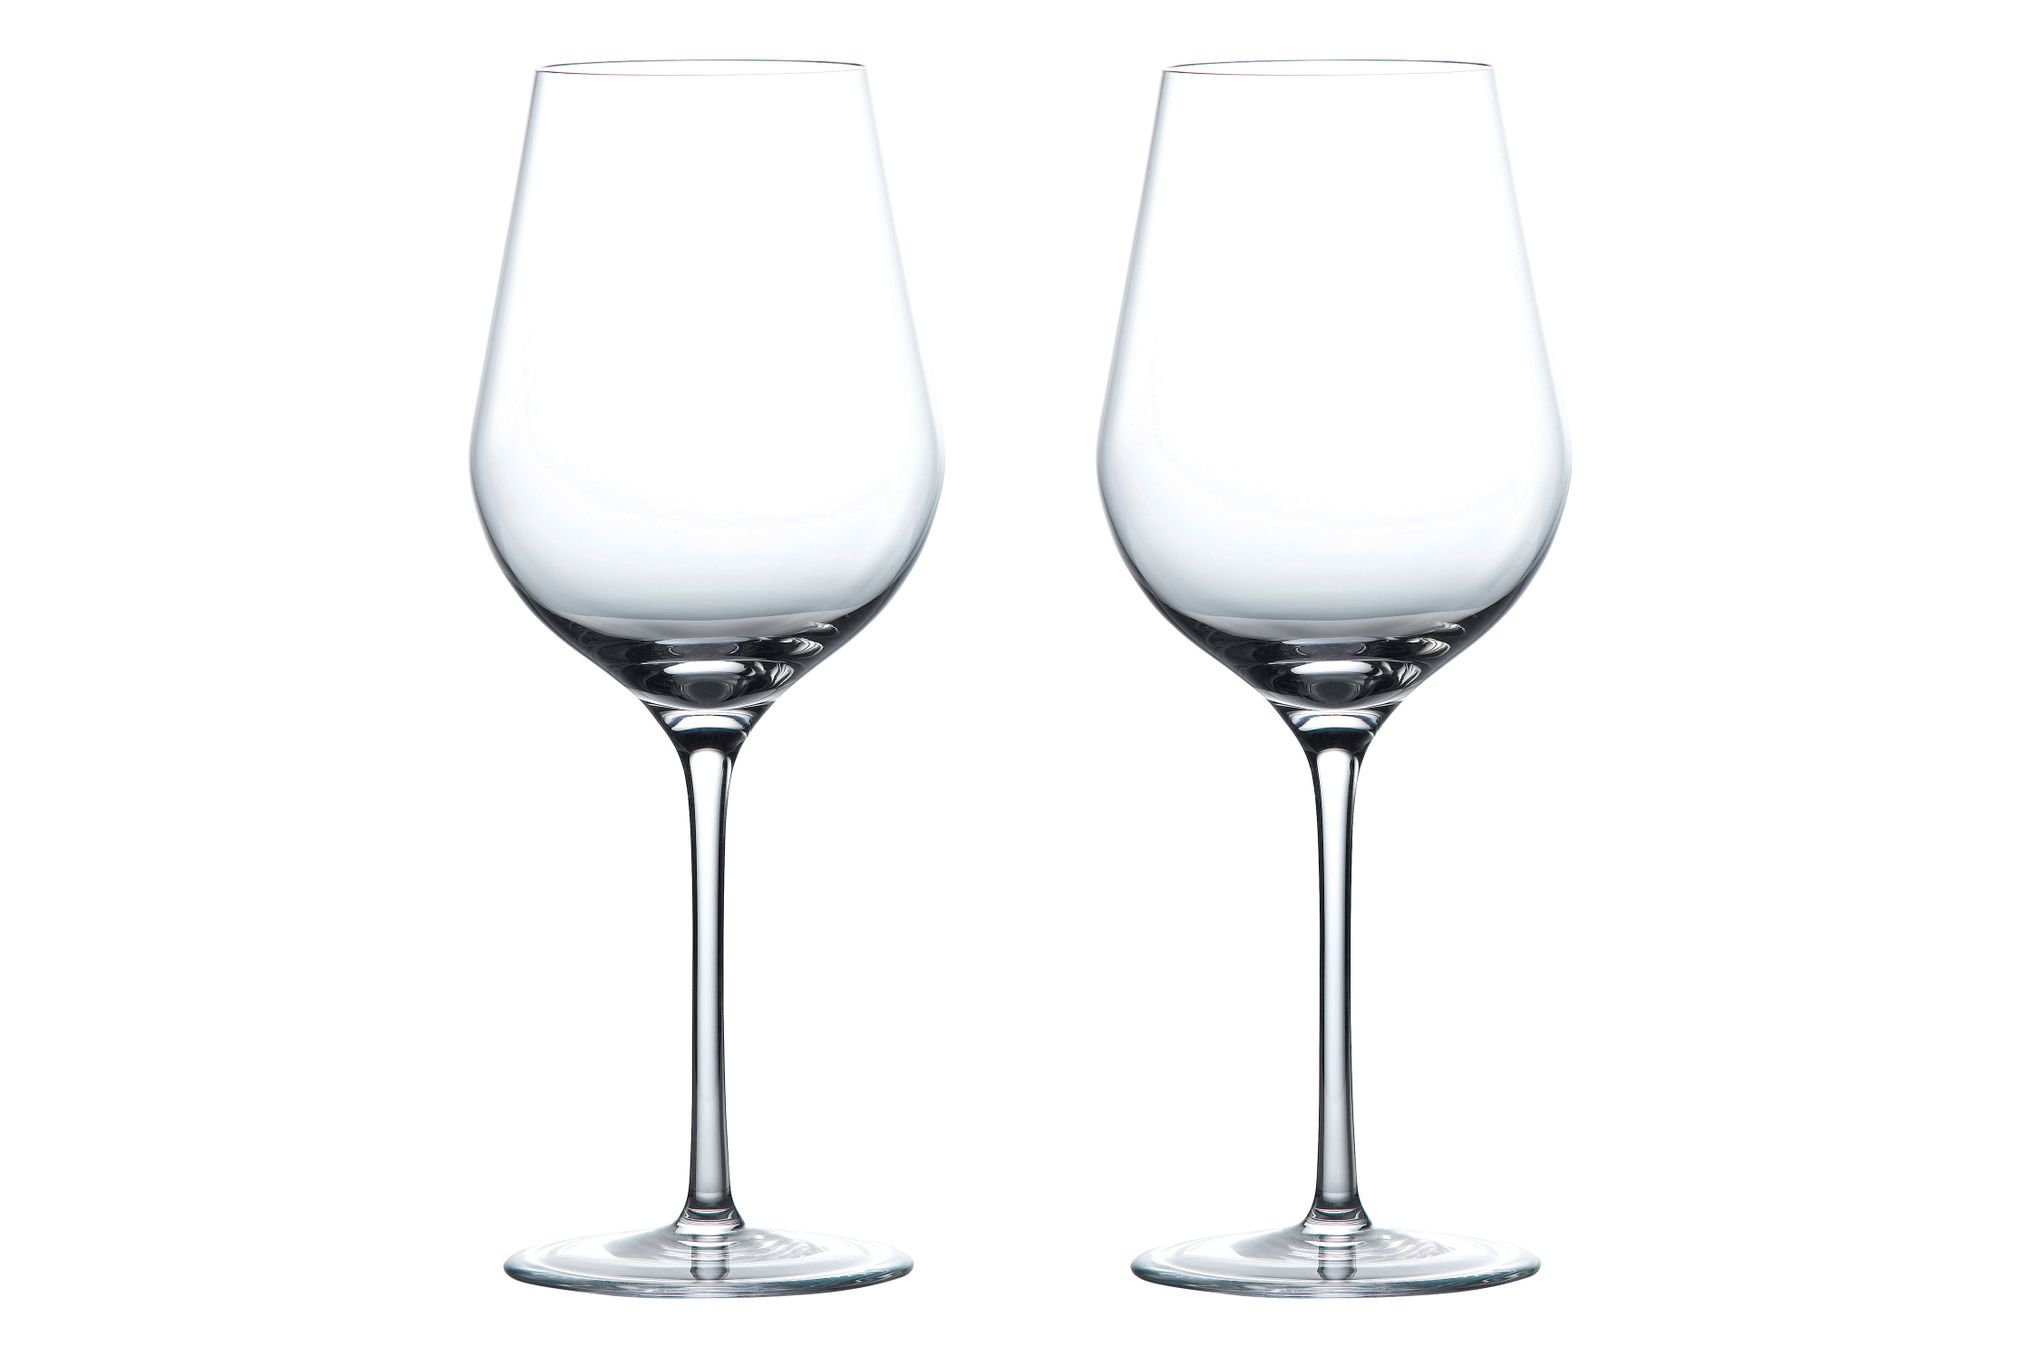 Wedgwood Globe Pair of White Wine Glasses thumb 1